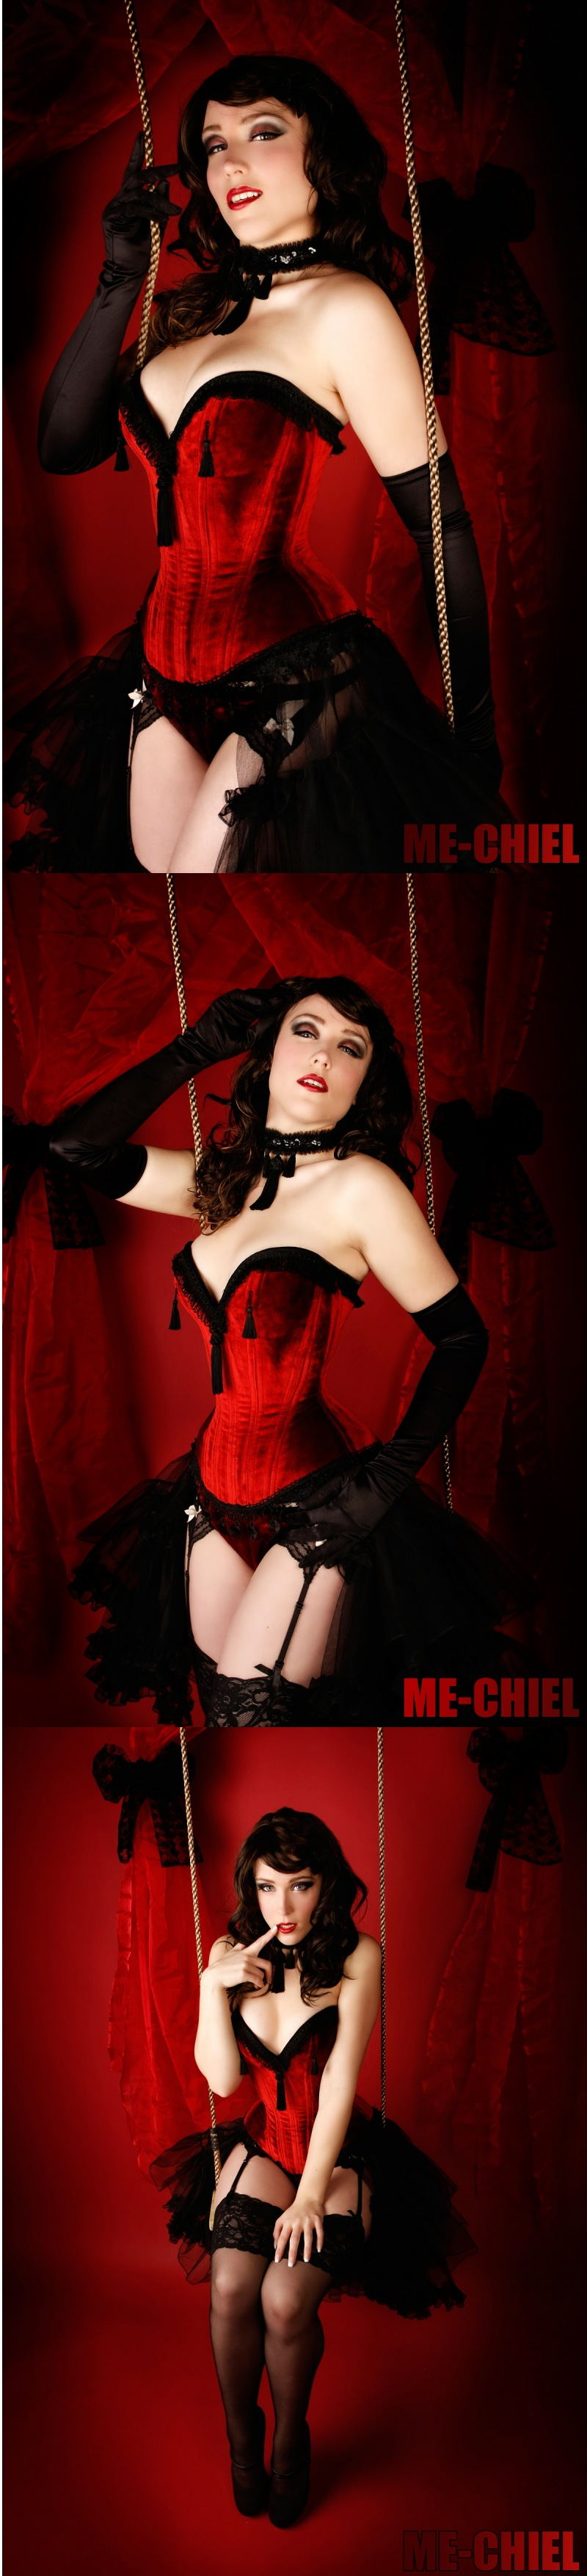 Feb 24, 2010 picture; me-chiel, corset; BizarreDesign Yolinda squeezed burlesque style by BizarreDesign